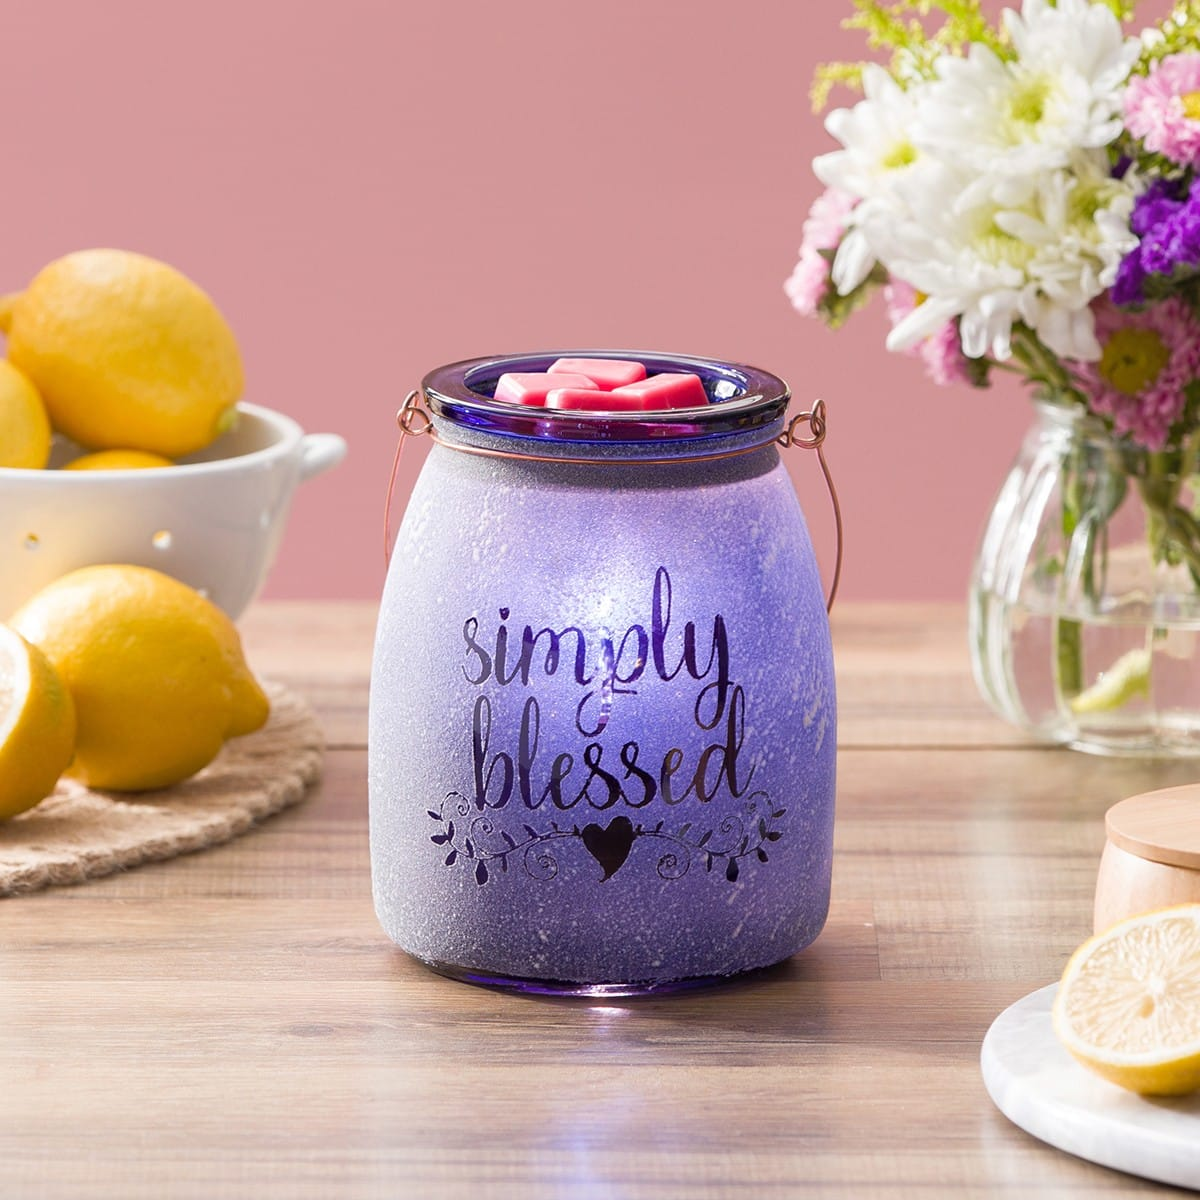 Simple Blessed Warmer! 💜   Just a reminder than we all are simply blessed. 🛍️    #blessed #grateful #decor #interiordesign #love #lifestyle #life #photography #ThursdayMotivation #waxmelts #shopsmall #Online #wax #FridayMotivation #god #WomenTellAll